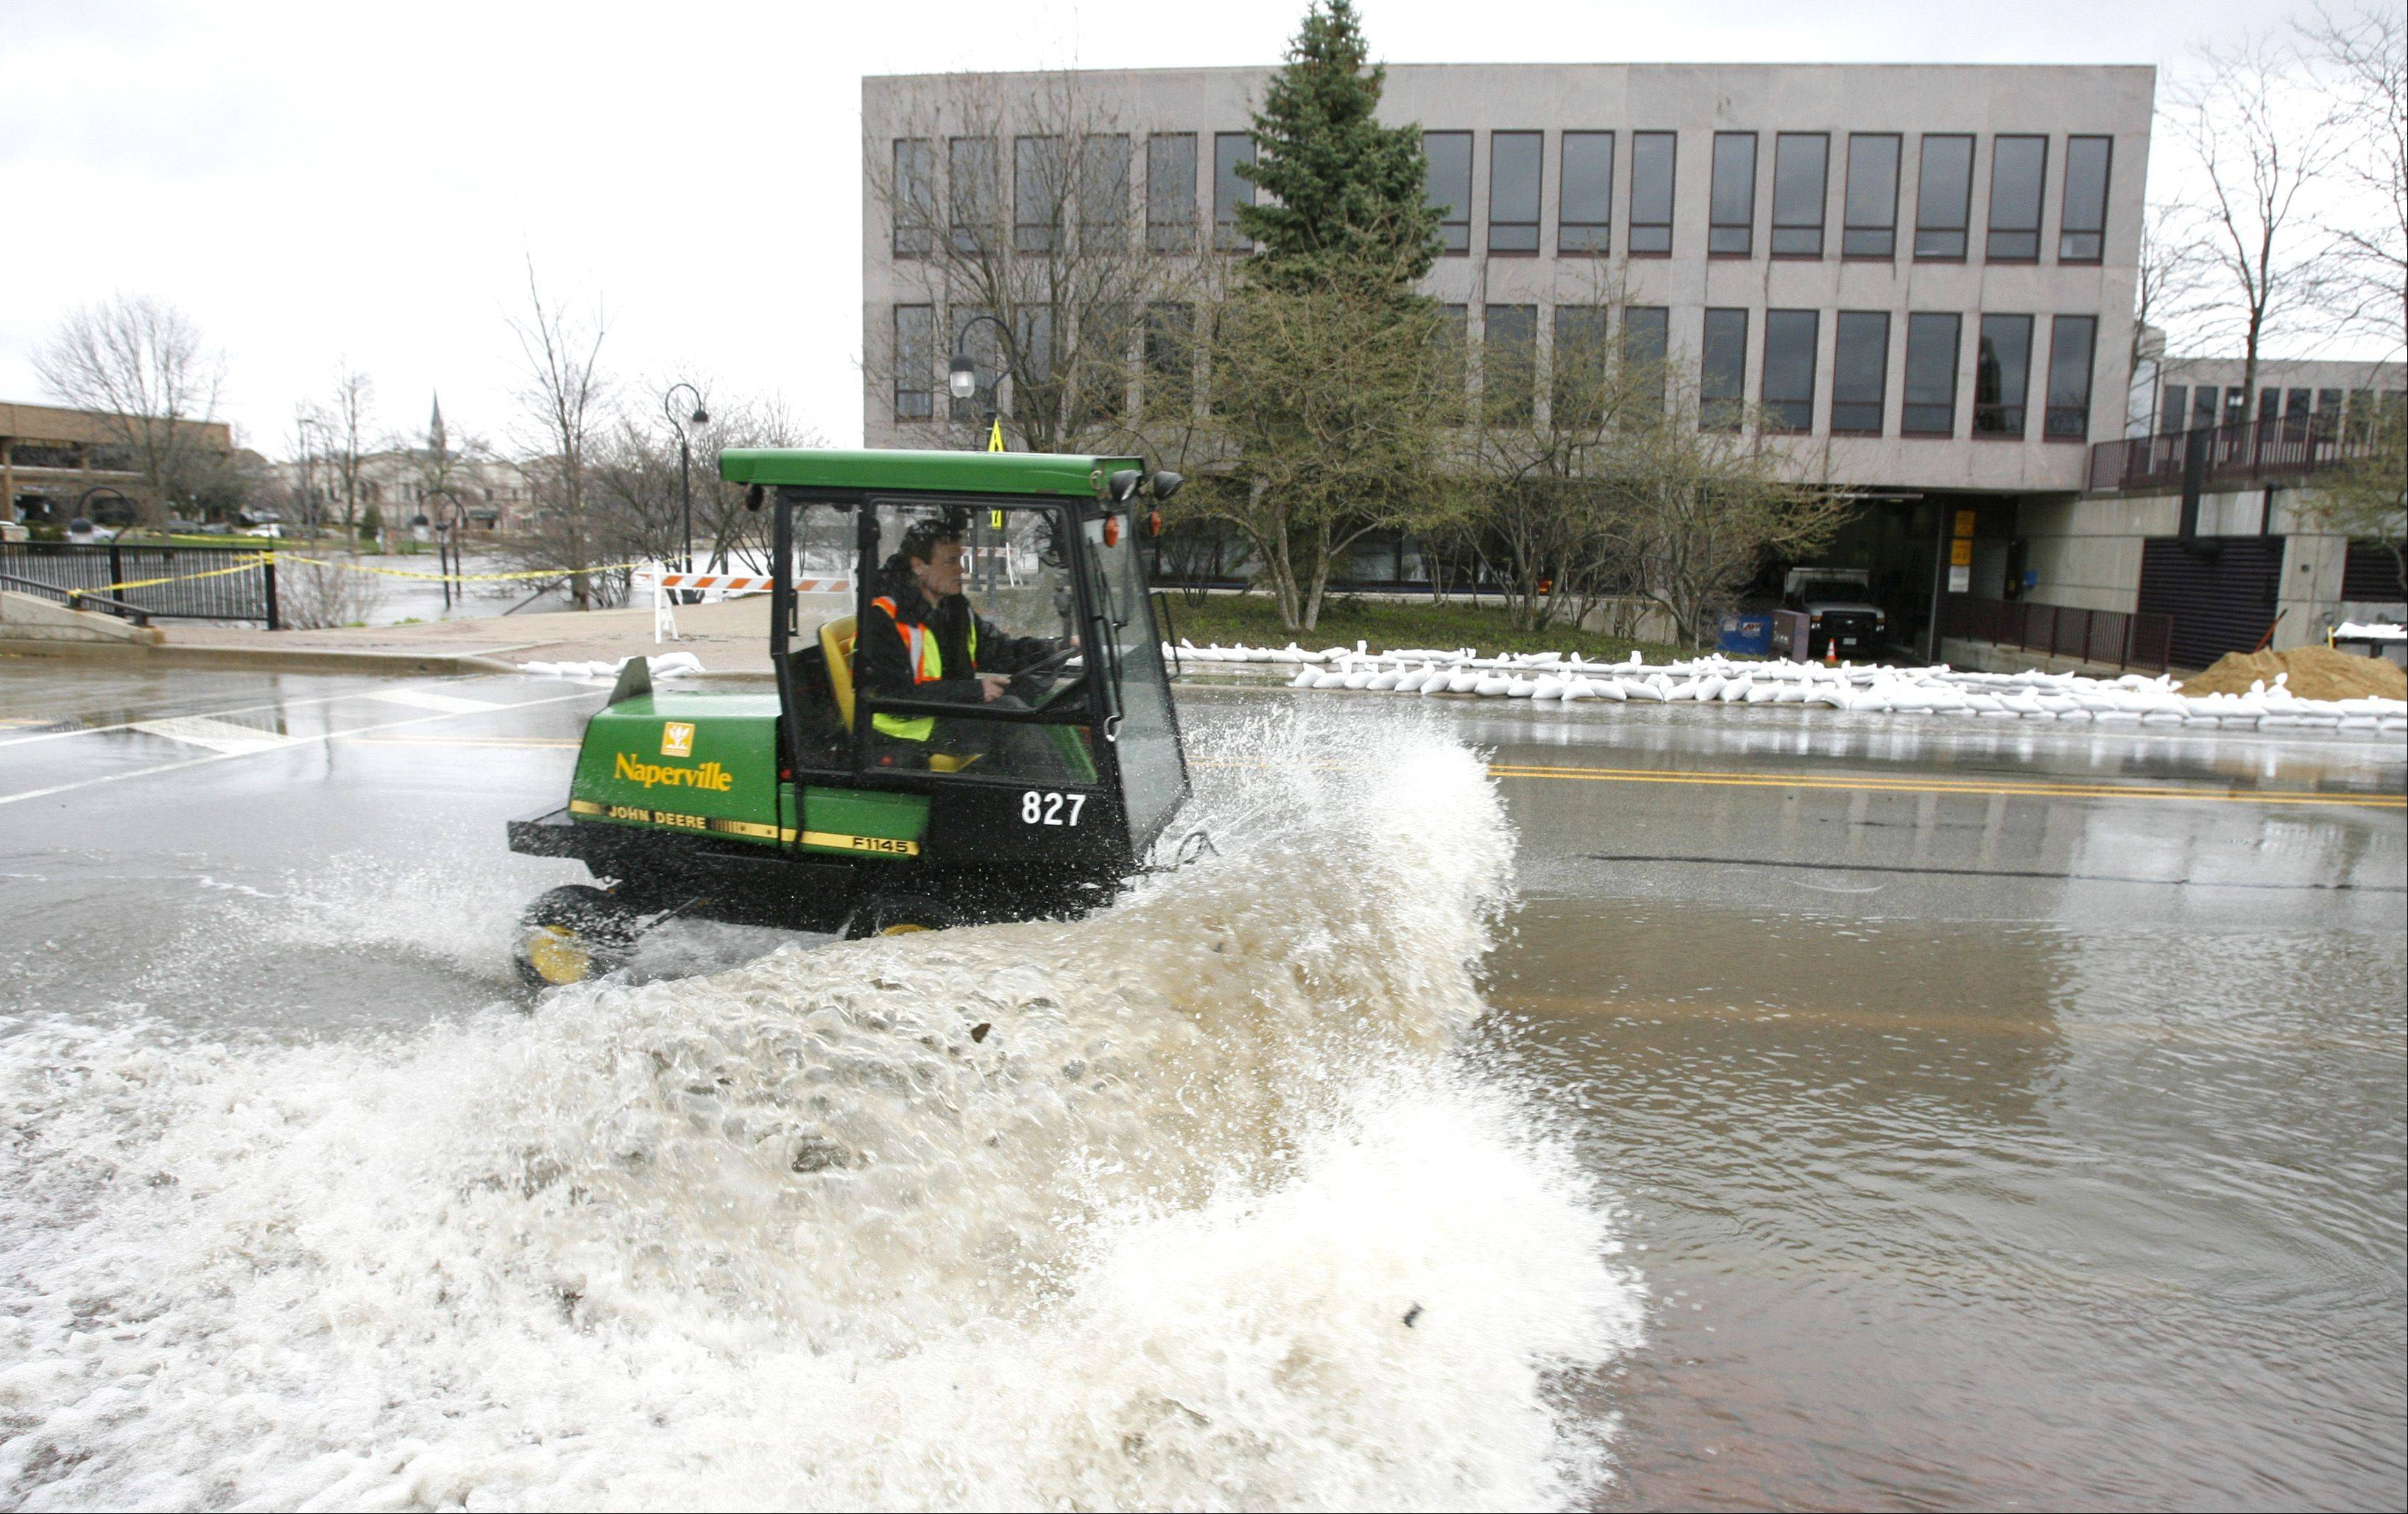 A city worker works to remove water near Naperville's city hall.